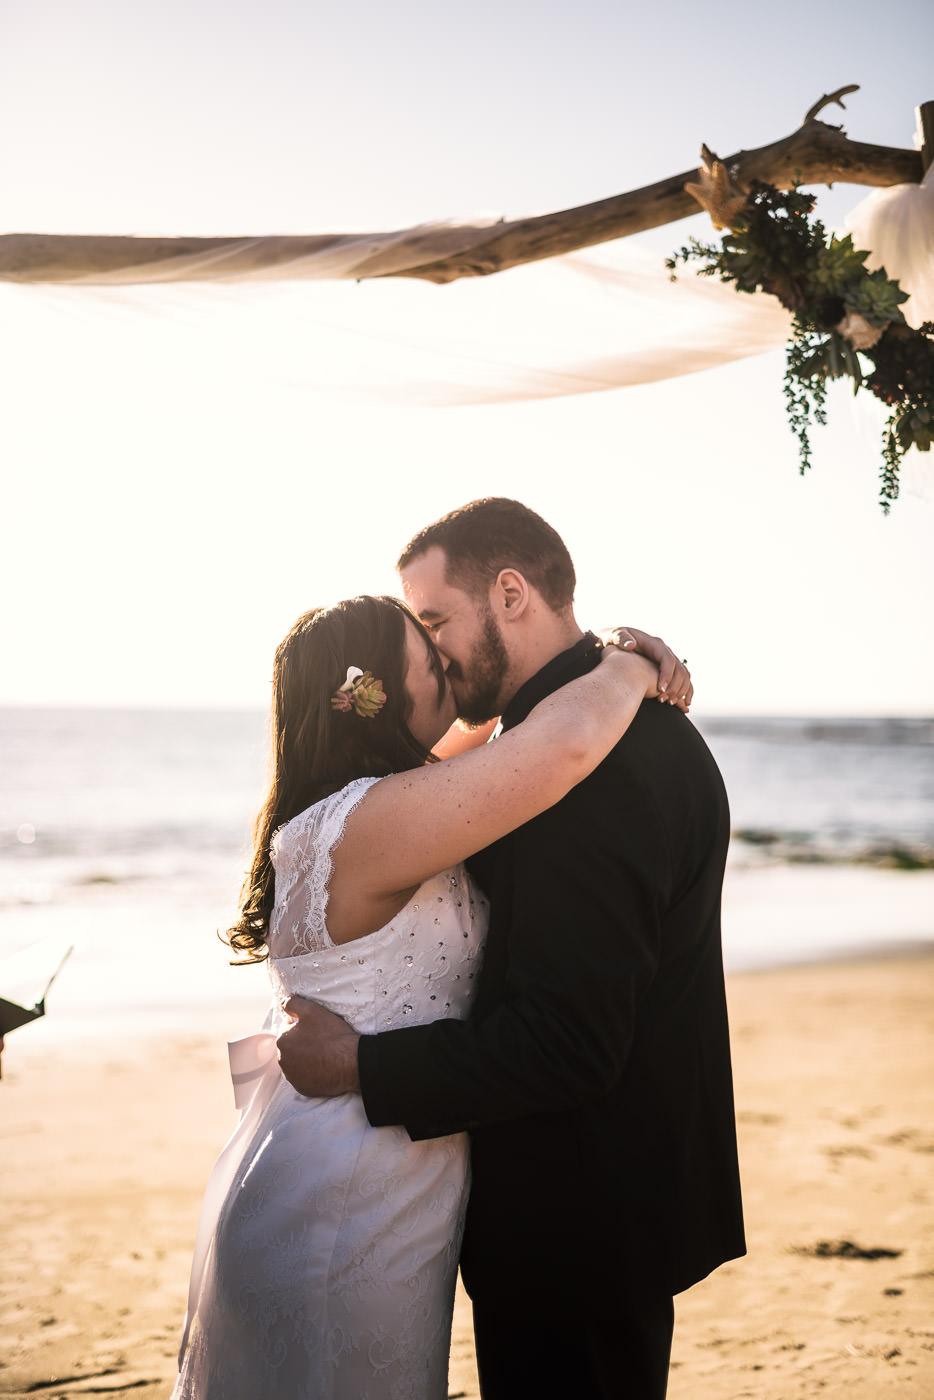 First kiss on the beach with the Pacific Ocean in the bacjground.